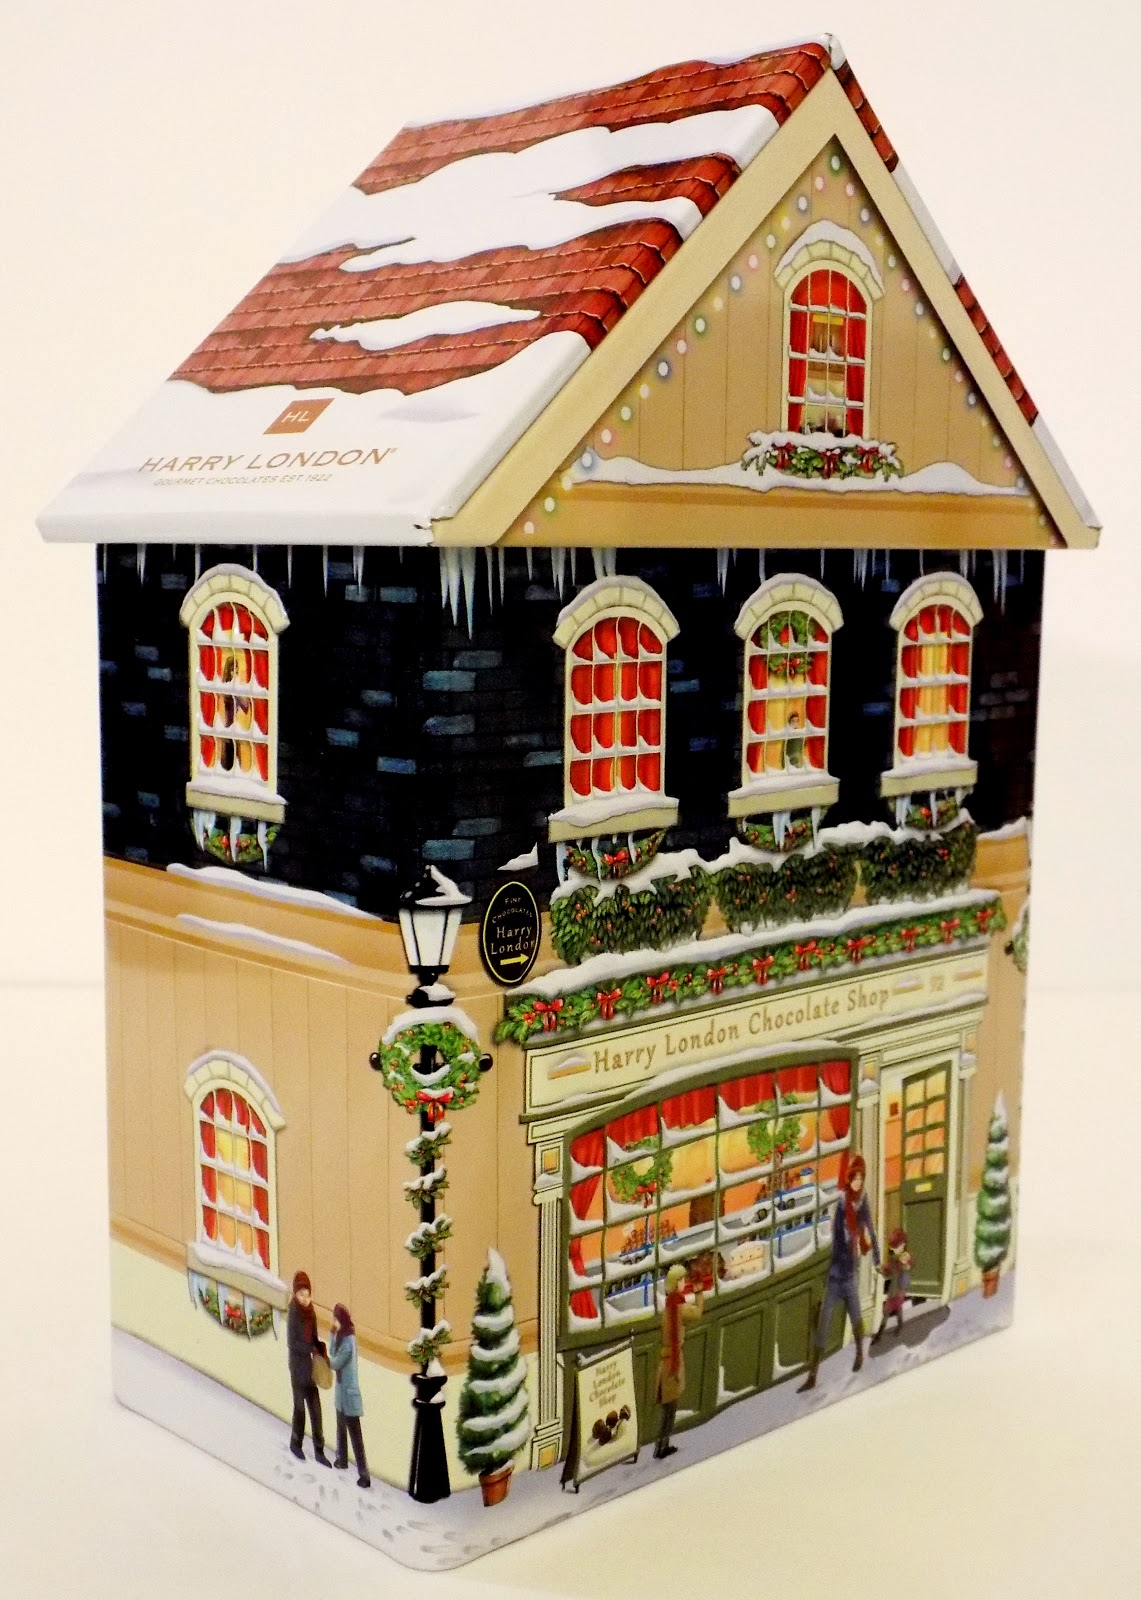 Toys and Stuff: 2016 Harry London Christmas Candy Tin - Harry ...